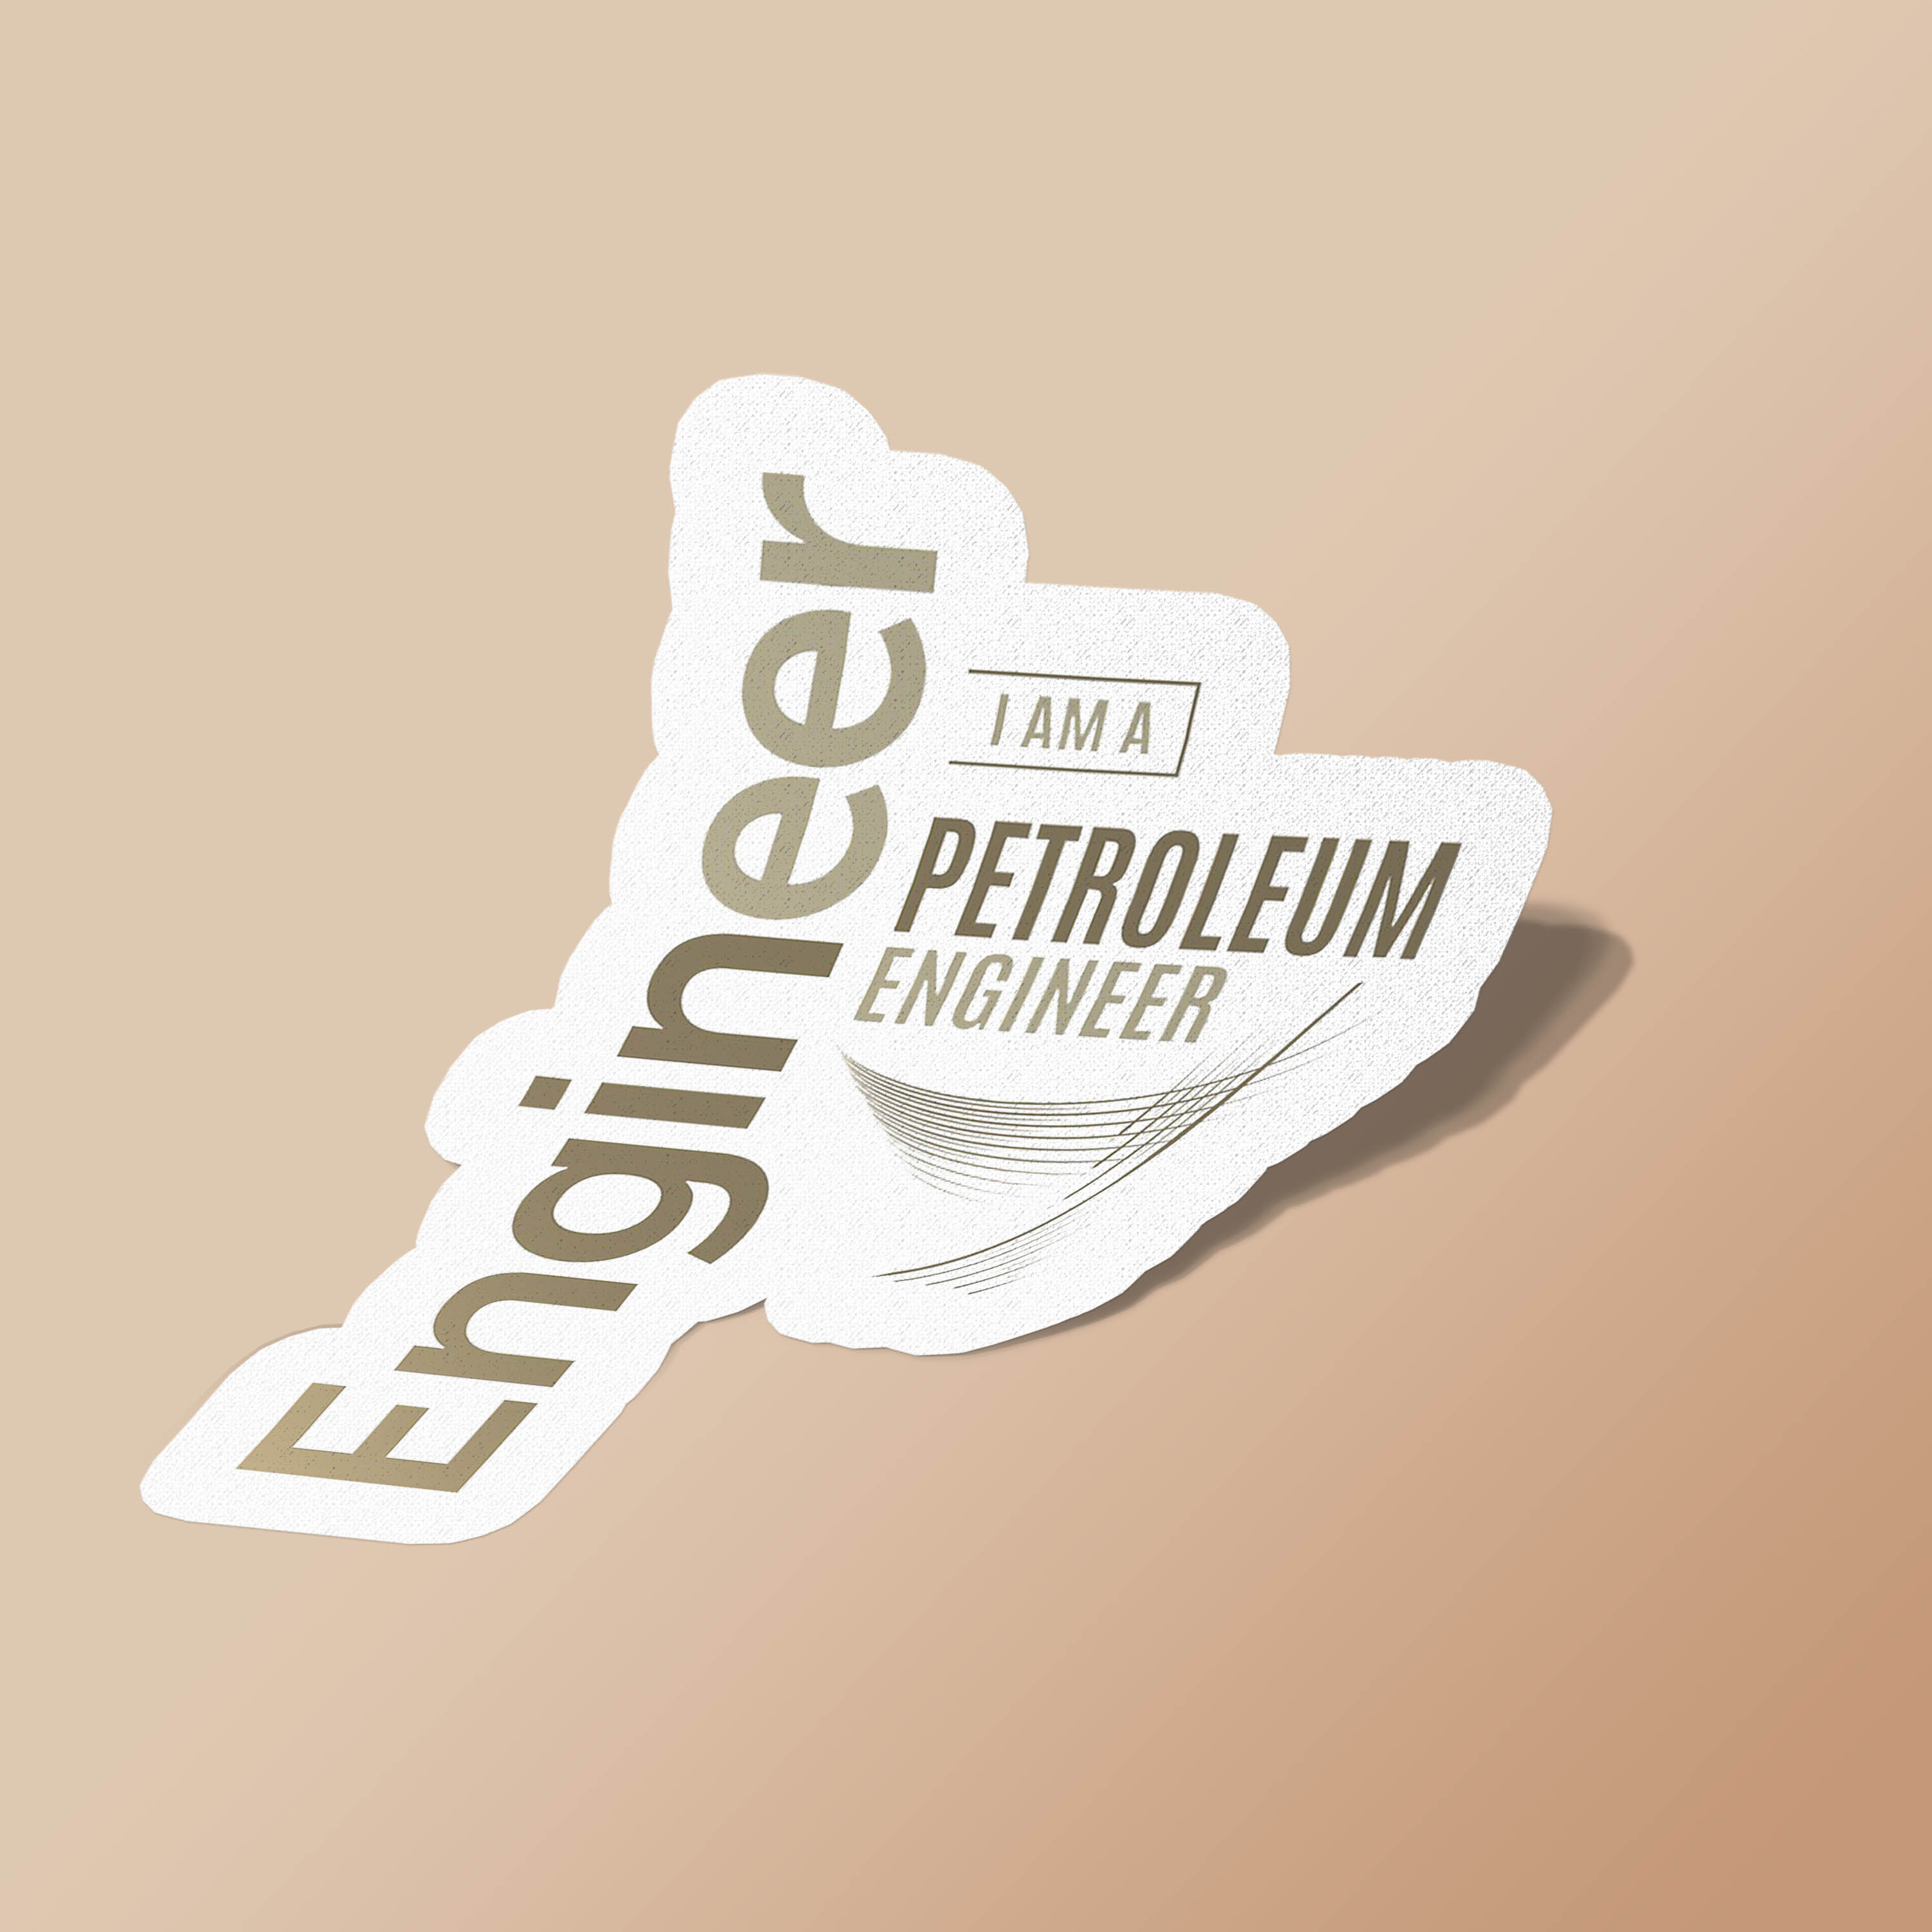 I am Petroleum Engineer